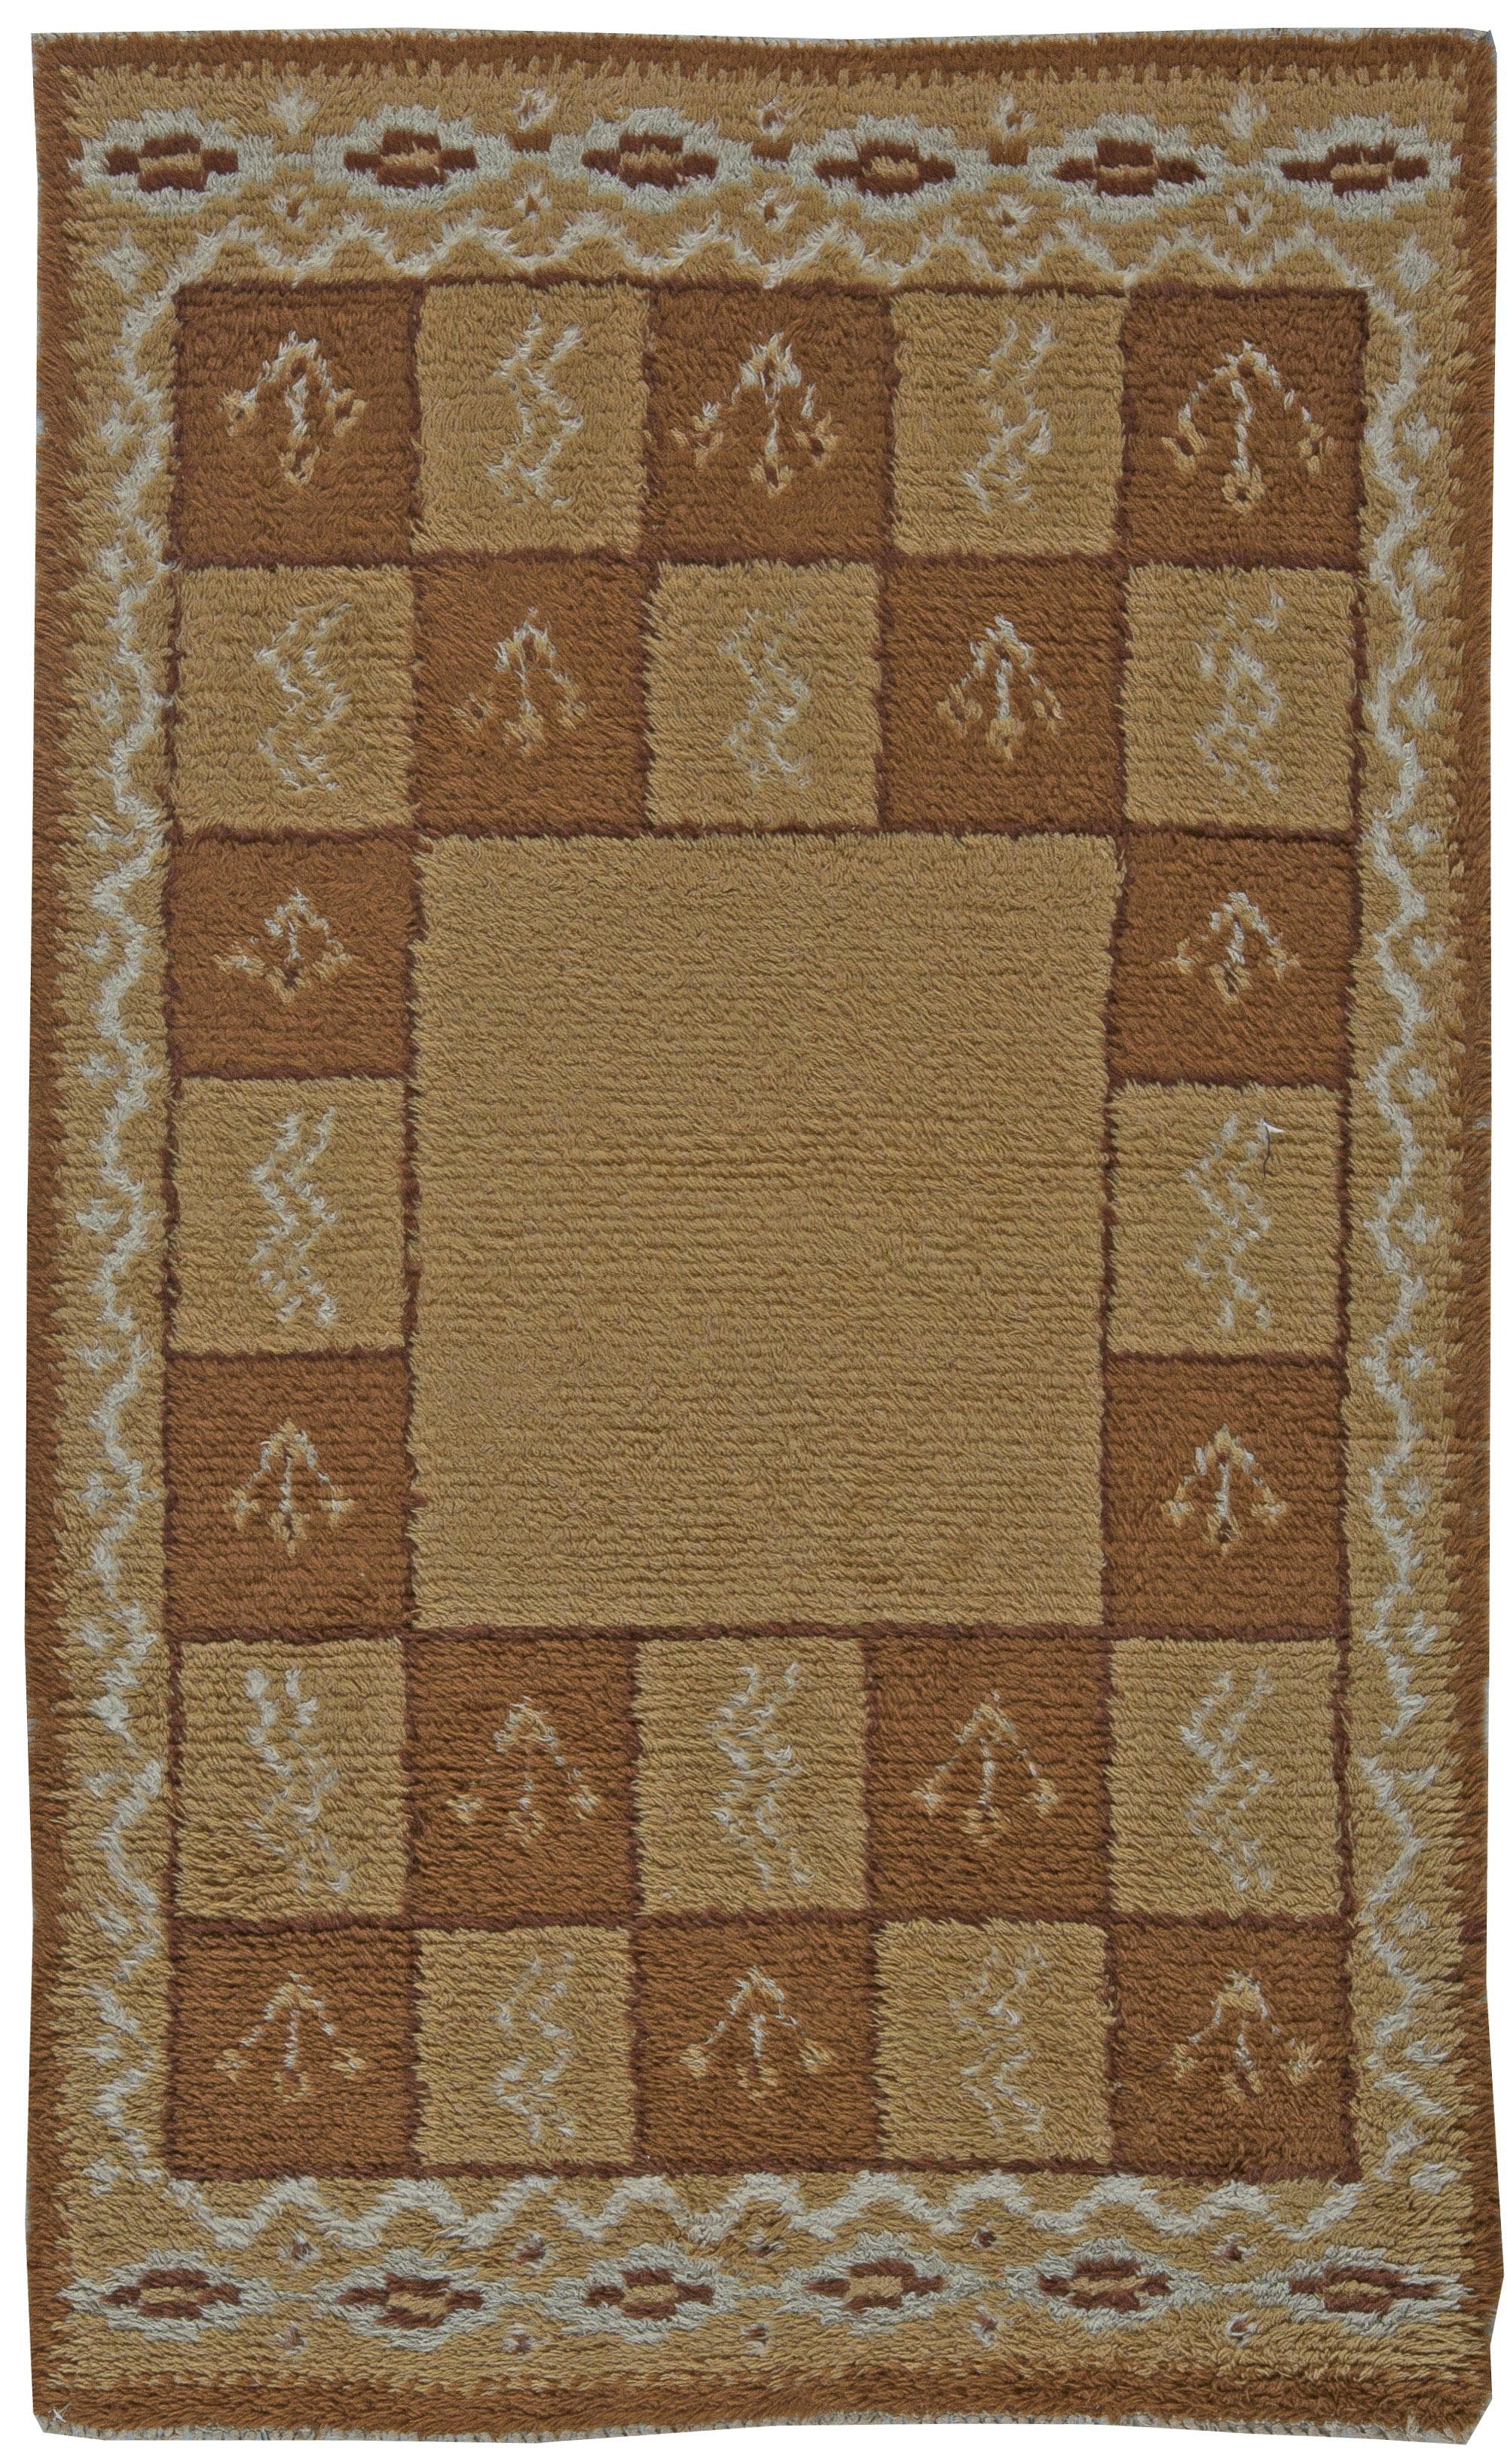 Vintage Swedish Pile Rug Bb5855 Antiques